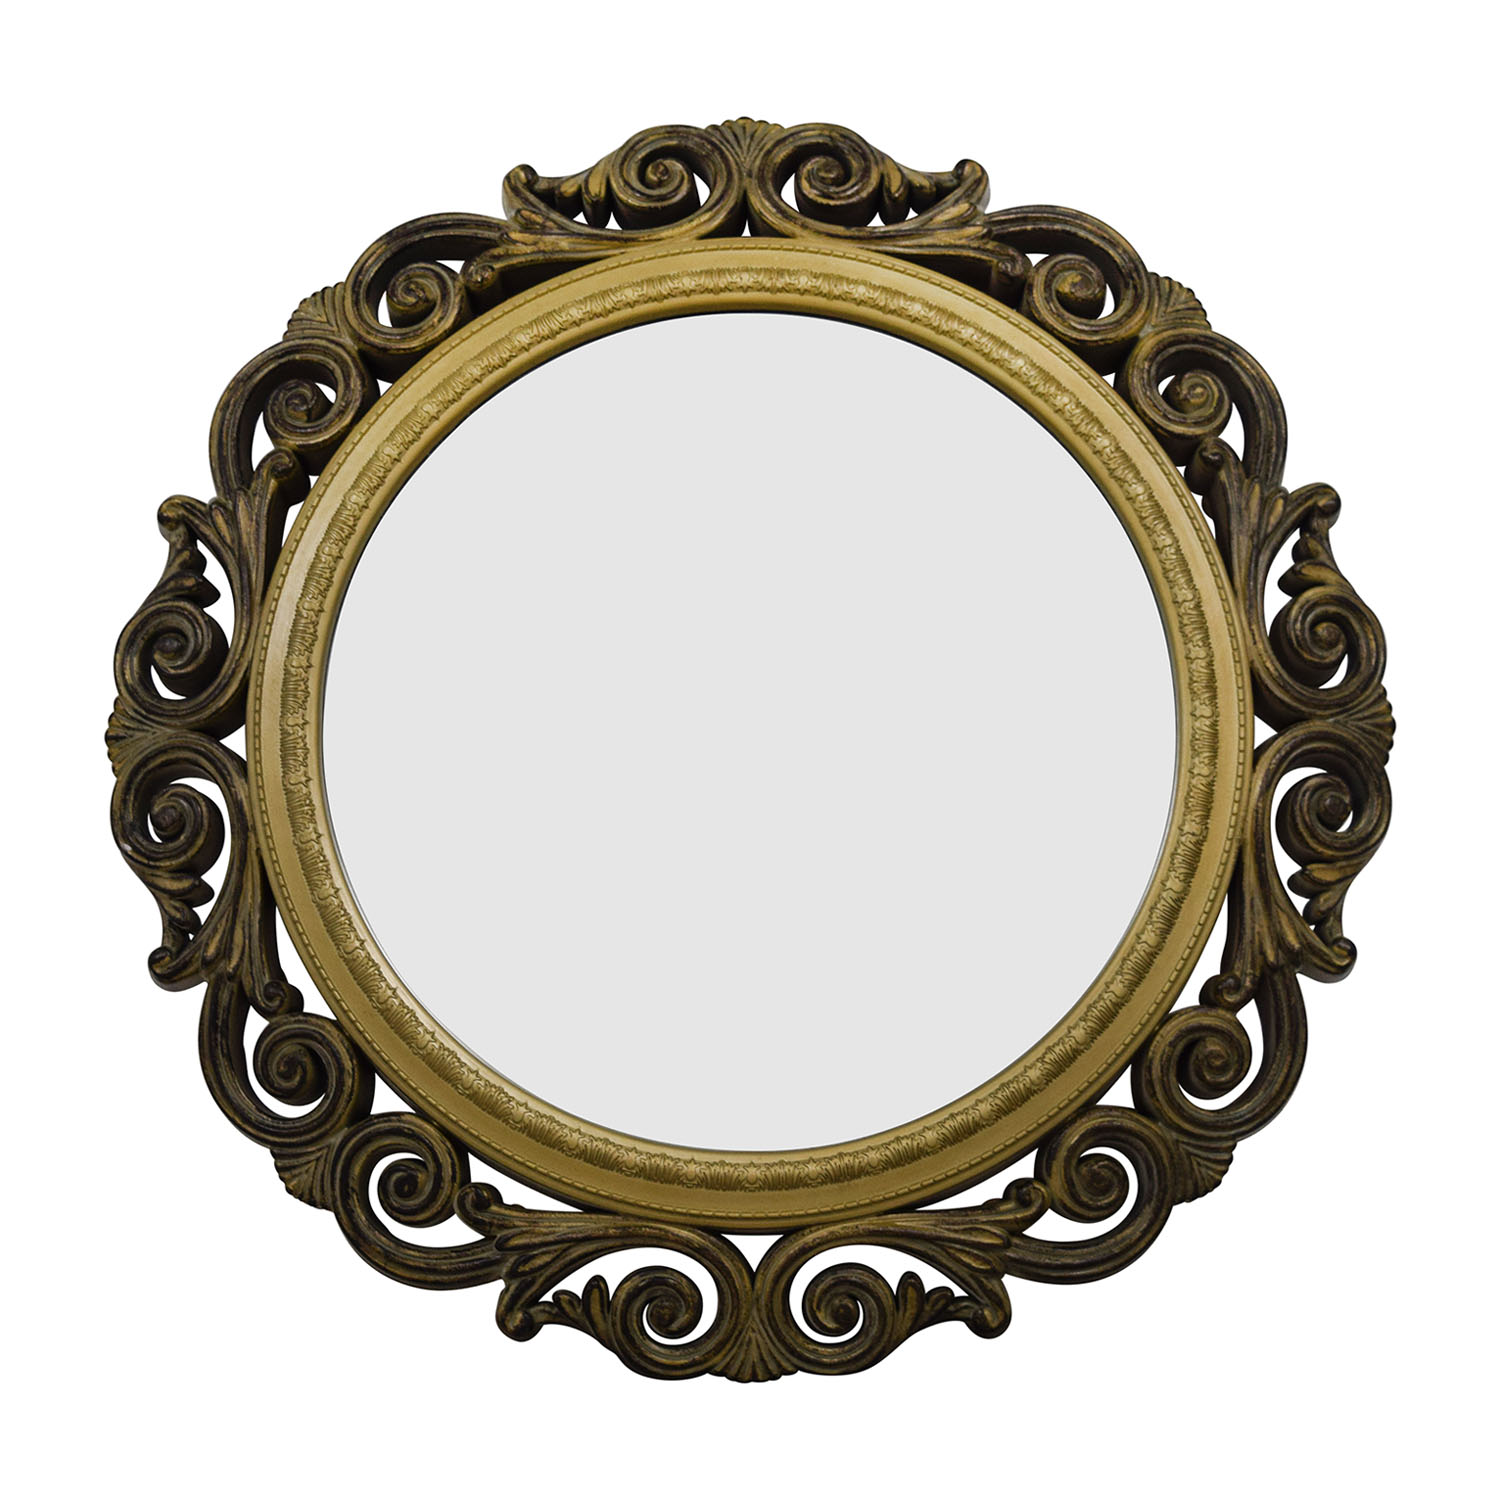 Gilded Round Wall Decor : Round picture frame image collections craft decoration ideas